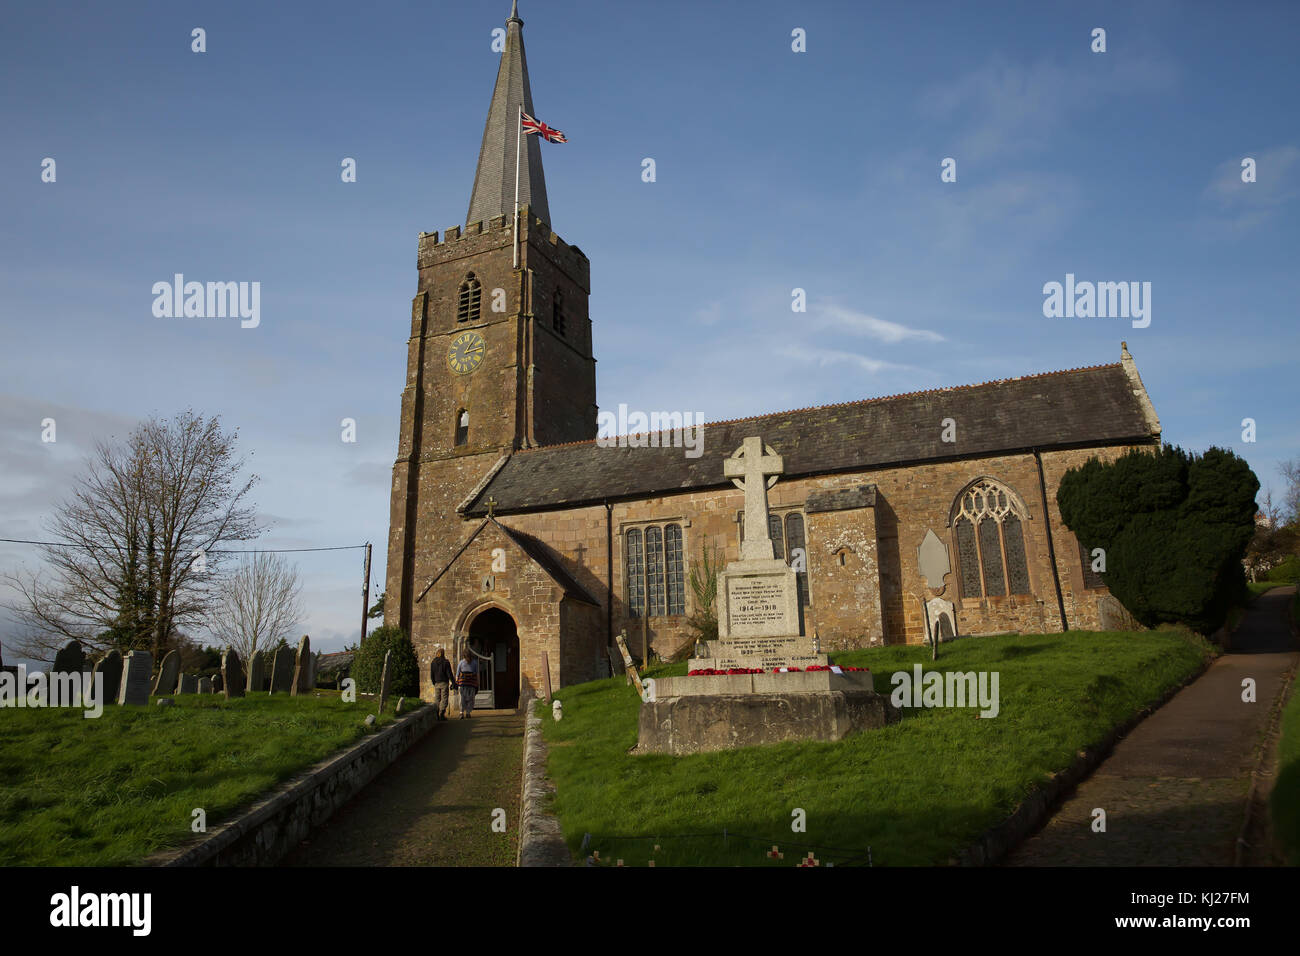 Hatherleigh, UK. 21st Nov, 2017. Blue skies over Hatherleigh in Devon. Credit: Keith Larby/Alamy Live News - Stock Image